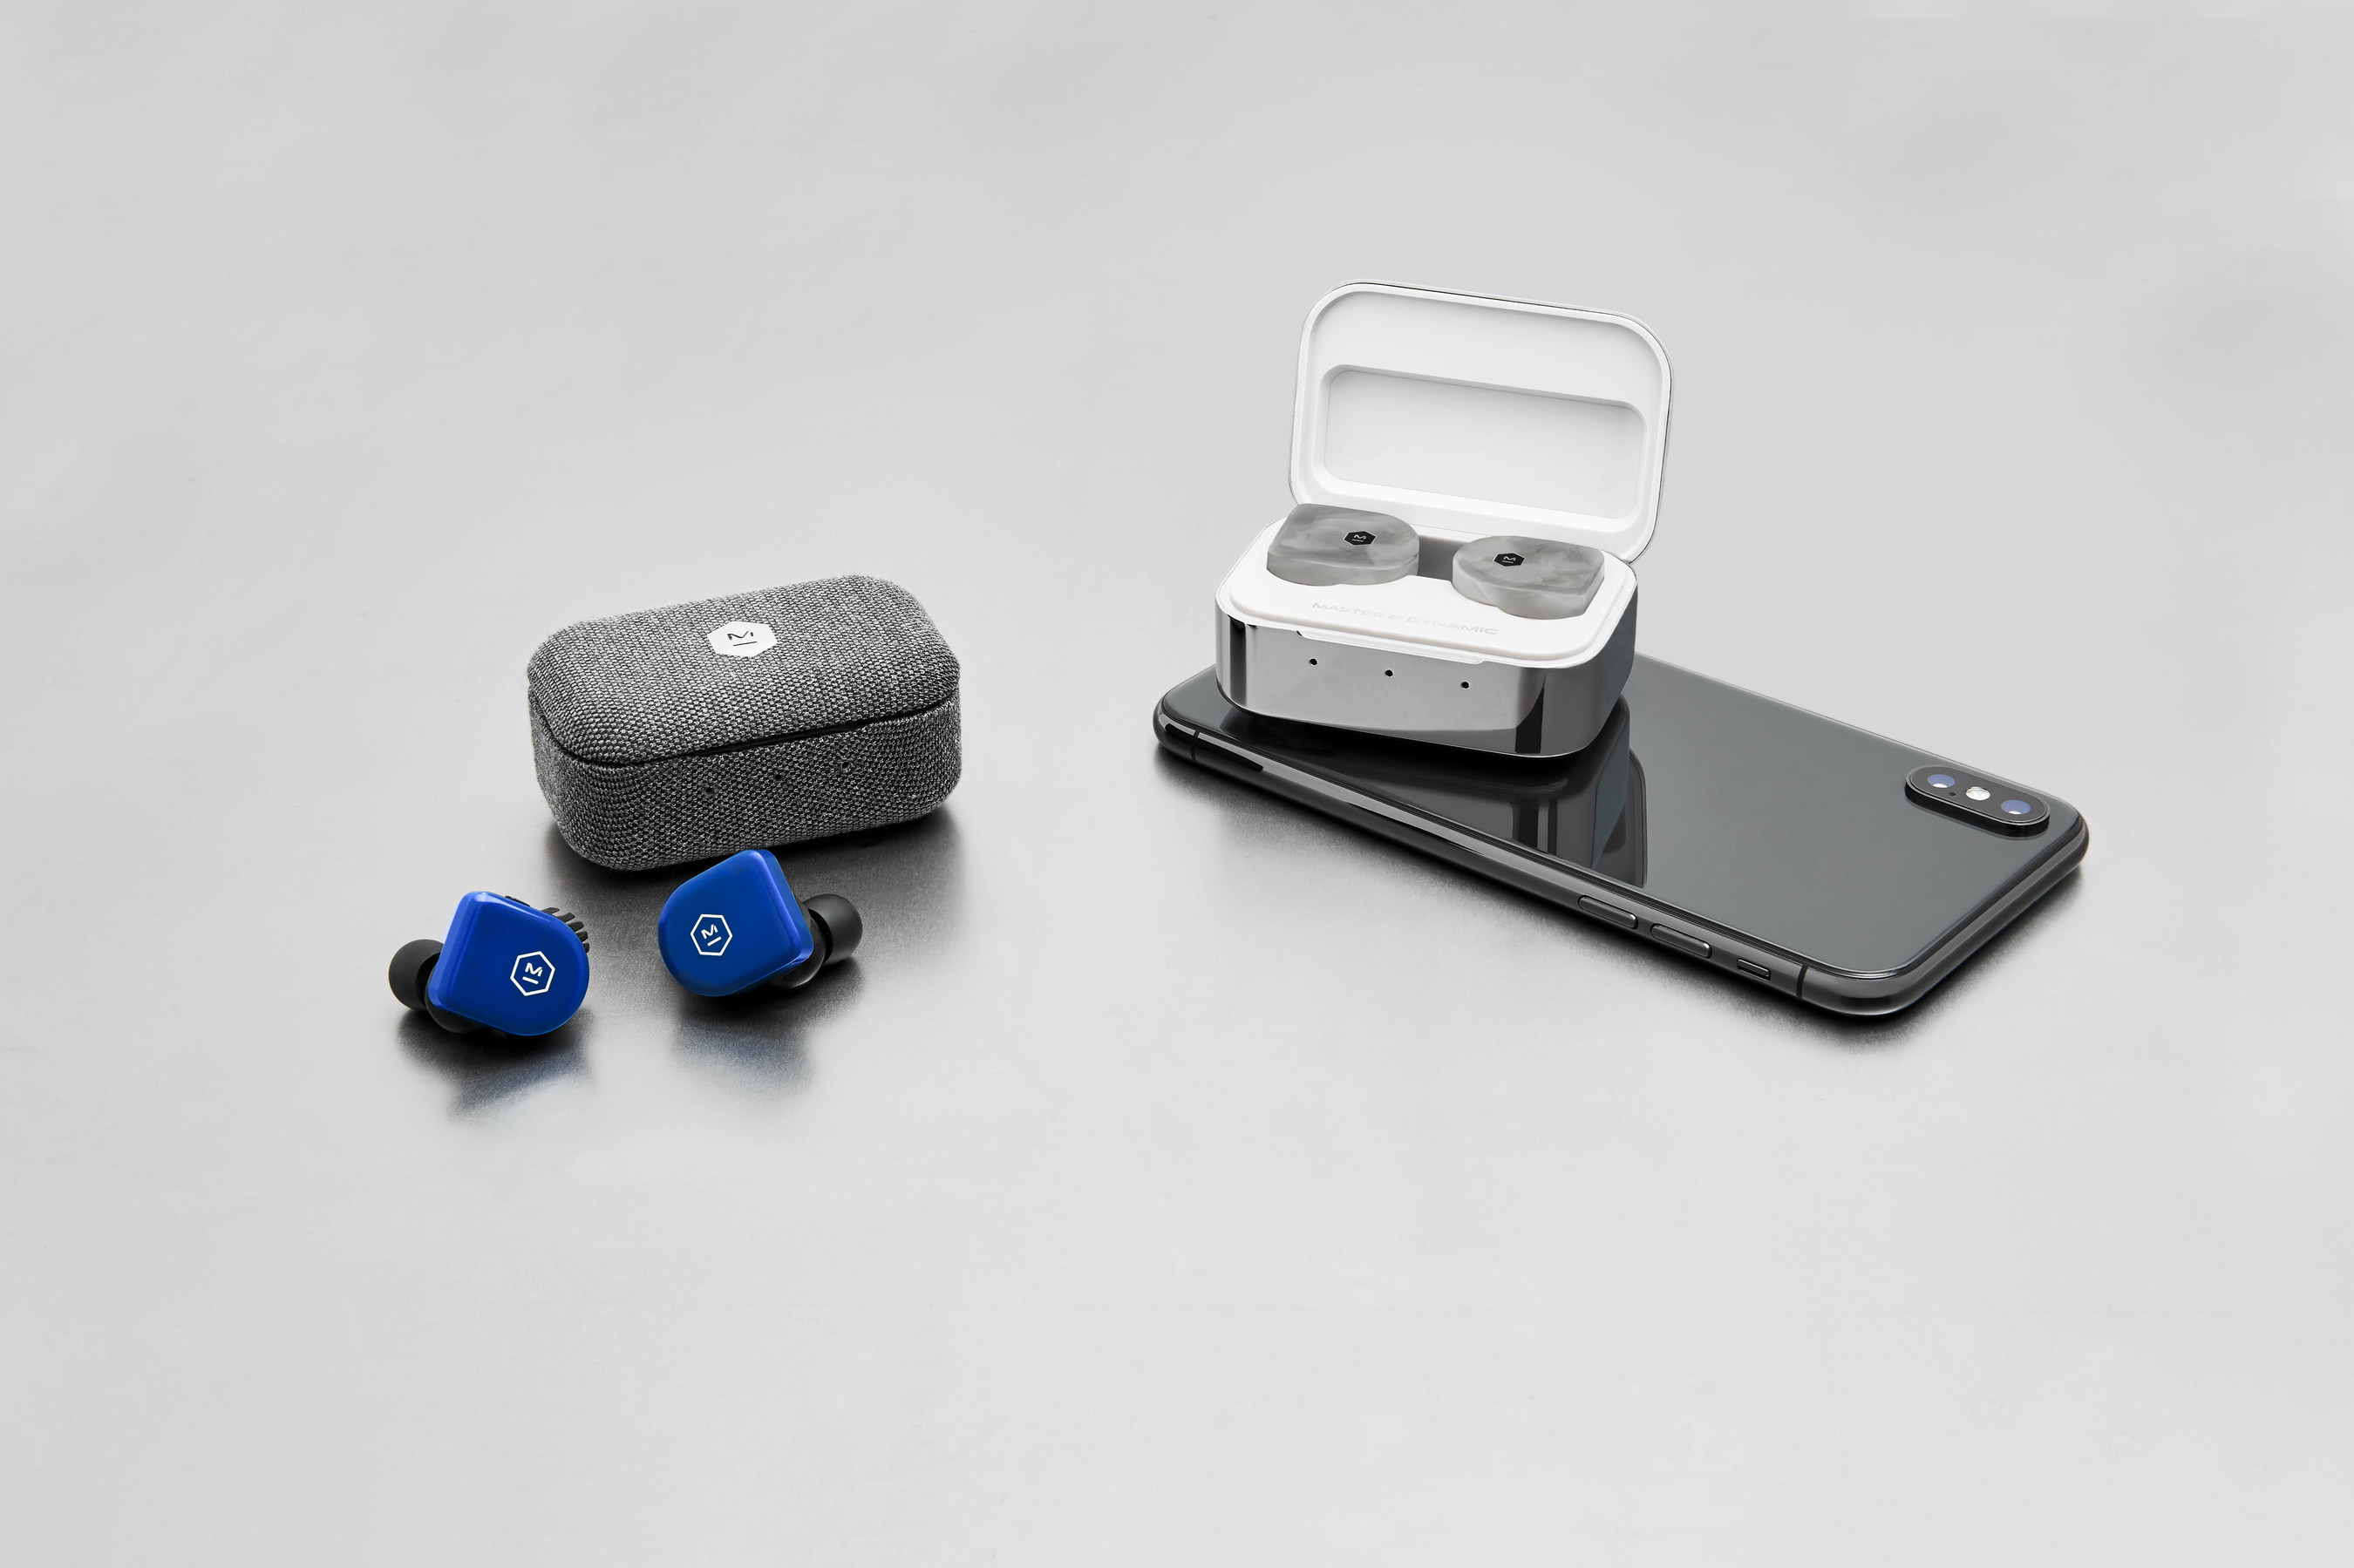 Master & Dynamic's pricey true wireless earphones get cheaper sibling